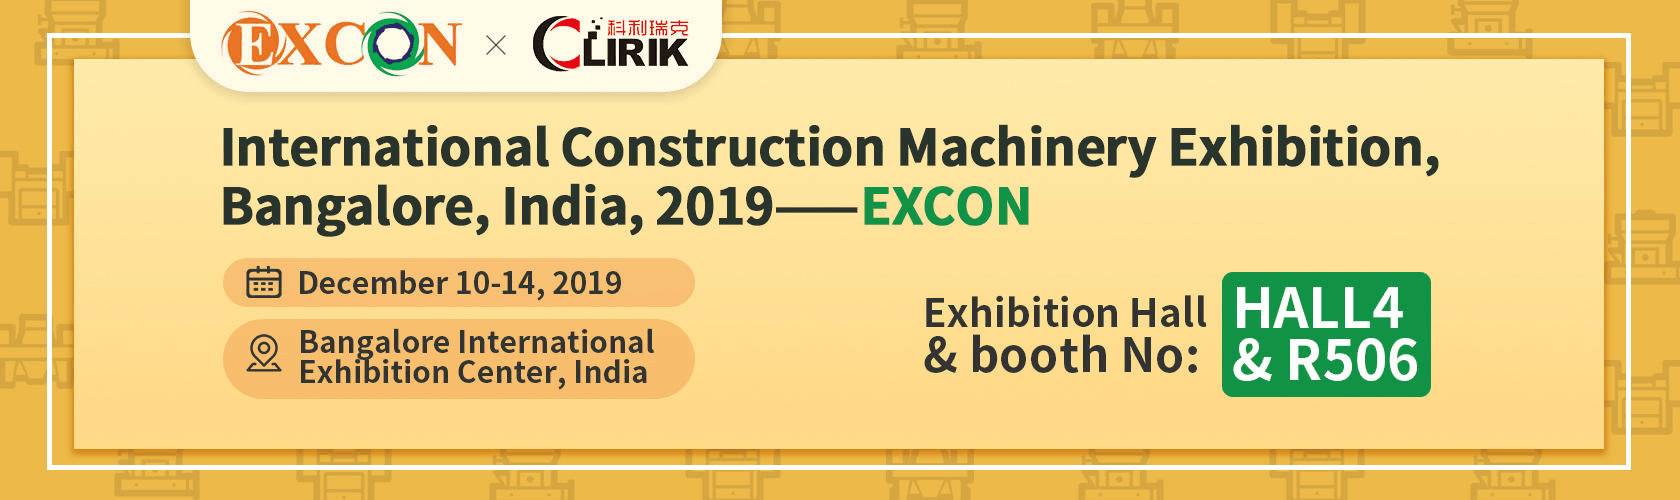 India International Construction Machinery Exhibition We are Coming